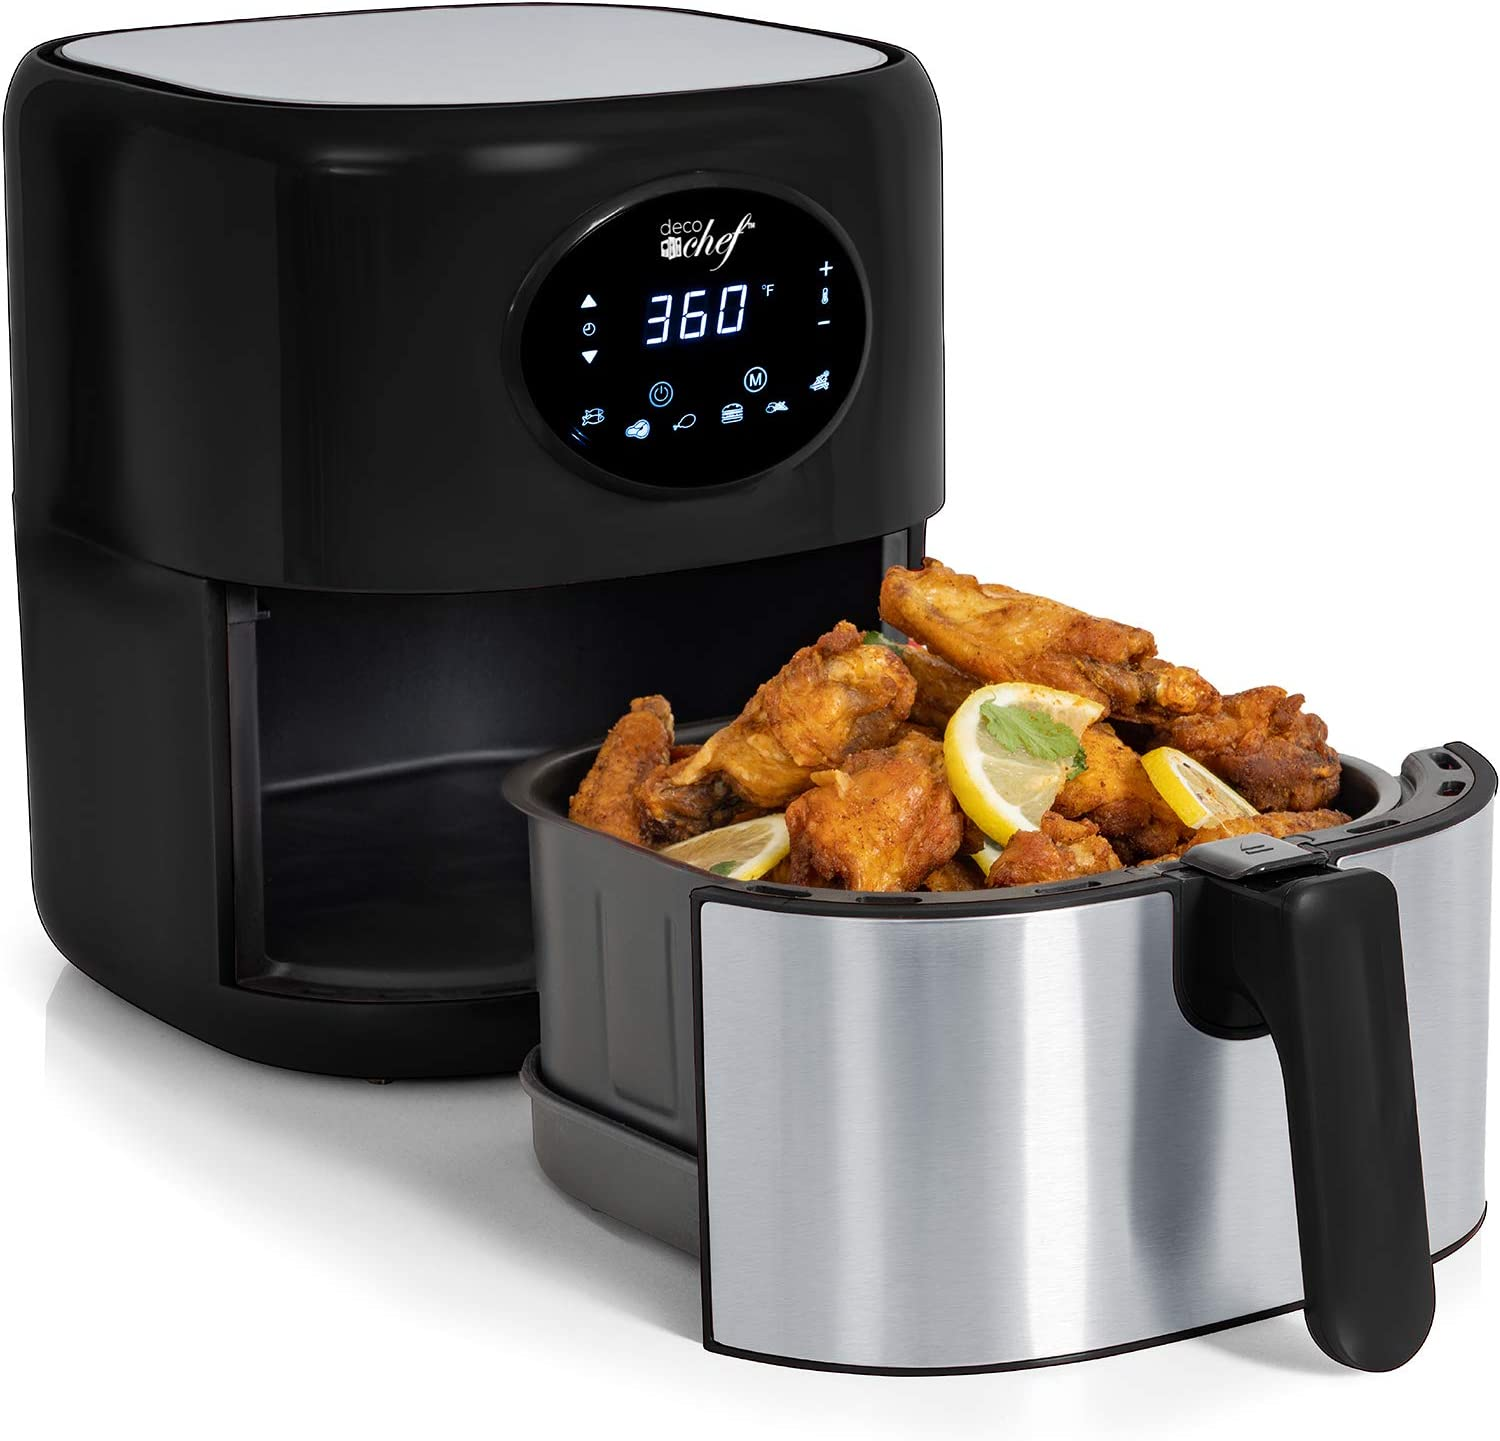 Deco Chef 3.7QT Digital Air Fryer with 6 Cooking Presets, LED Touch Controls, Adjustable Temperature and Time, Detachable Dishwasher Safe Non-Stick Basket, ETL Certified, Black